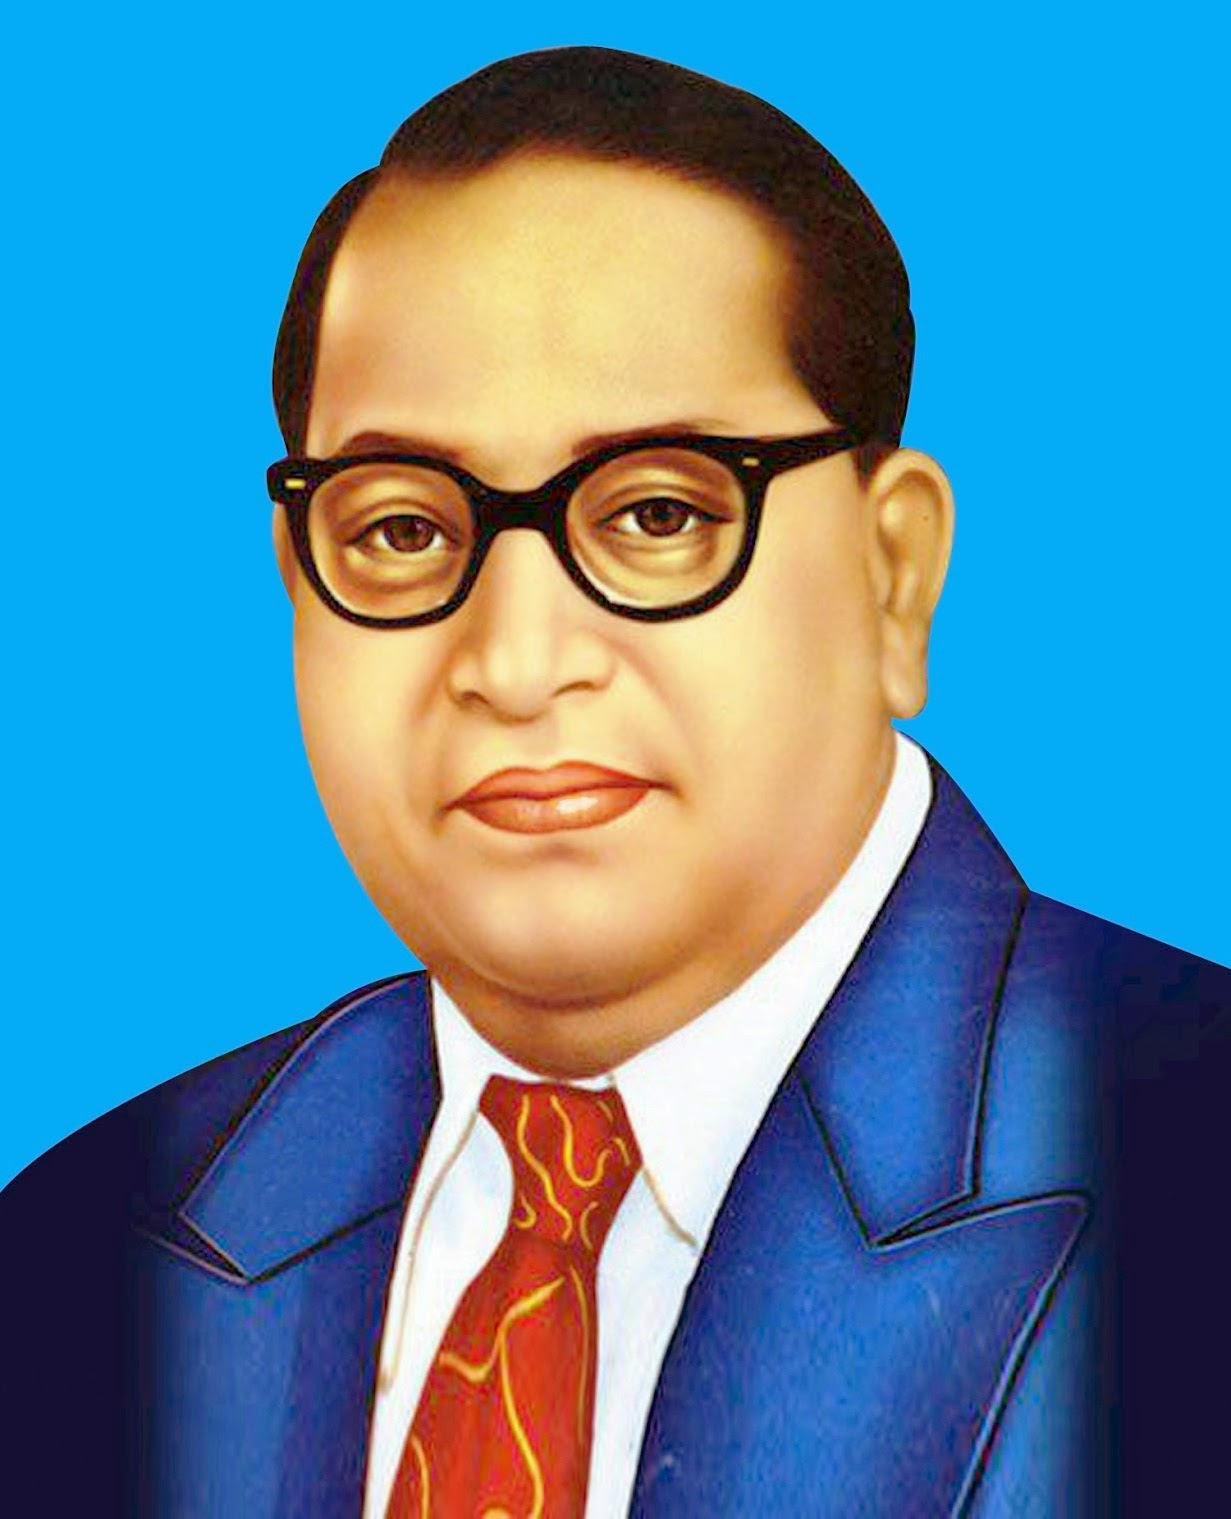 dr amdedkar a social reformer Dr b r ambedkar was one of the greatest man in india he was a social reformer he wrote the constitution of india he abolished untouchablity from india.